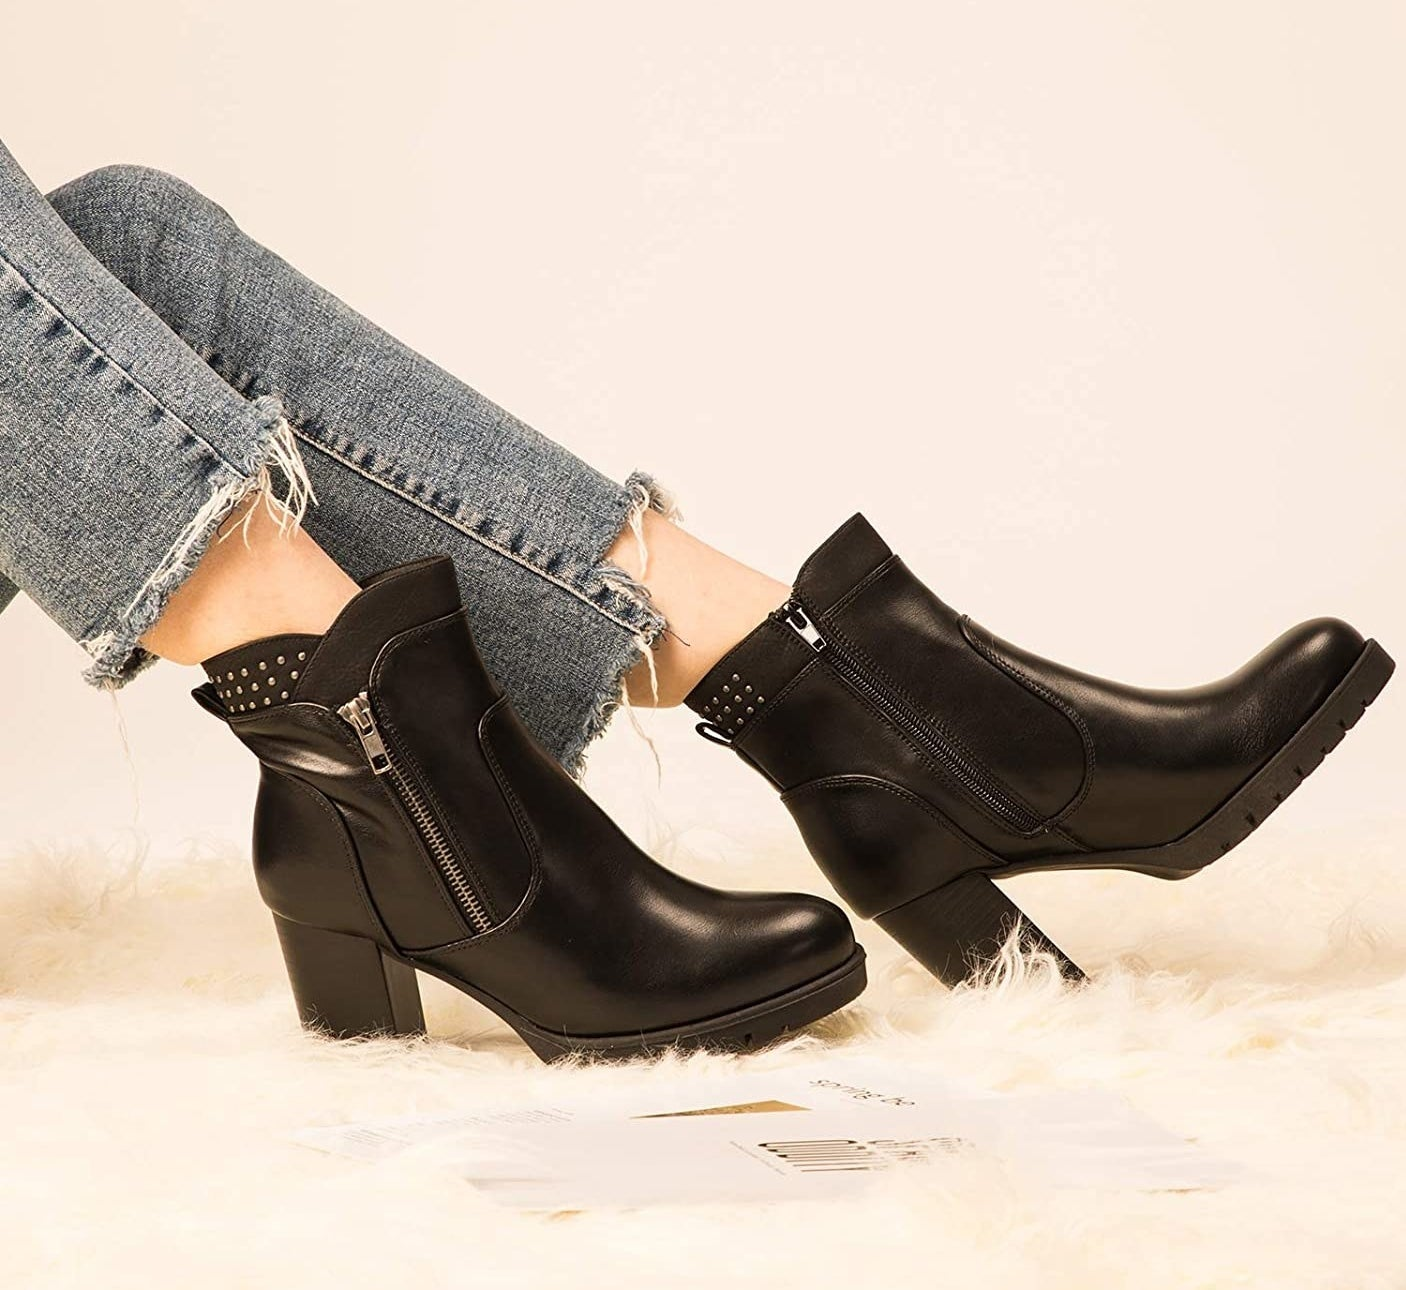 Model wearing the black high heeled booties with a silver zipper and stud details at the back of the ankle